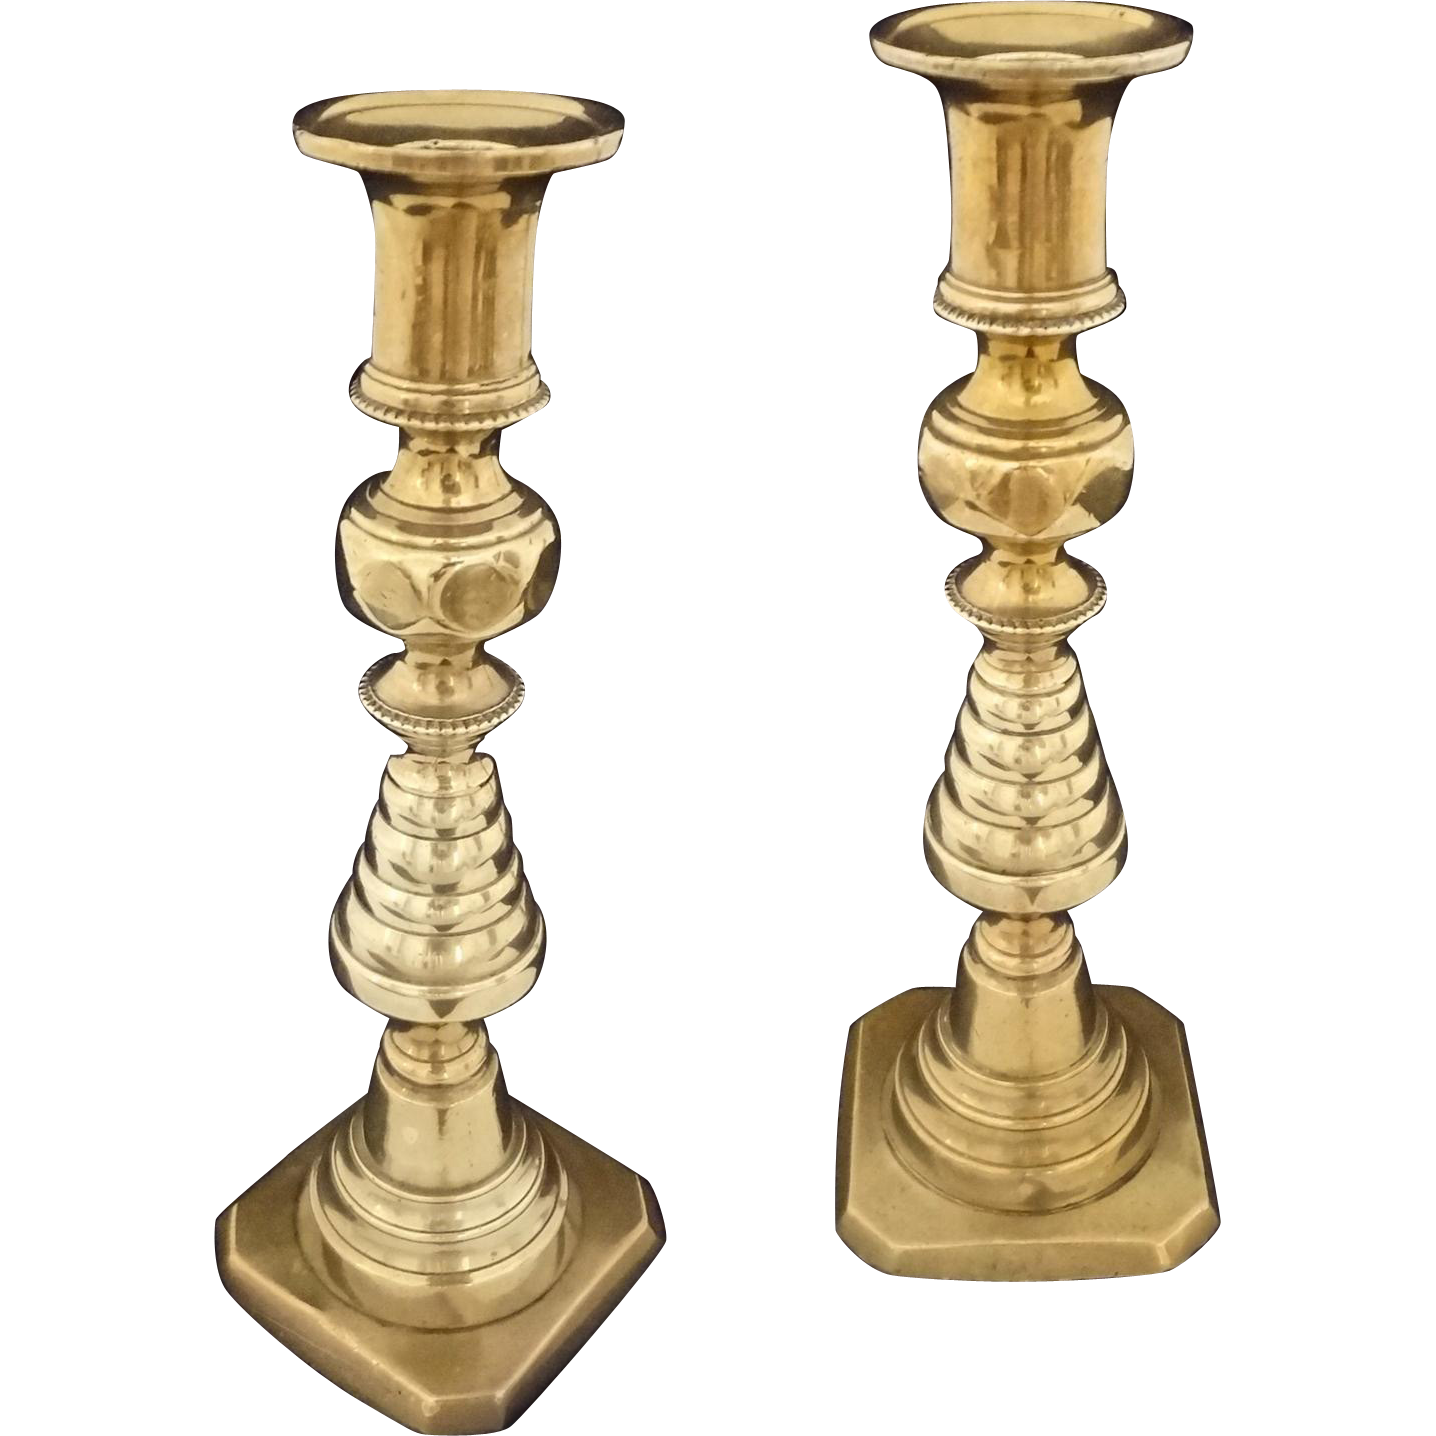 Pair Antique Bronze Beehive Push Up Candlesticks - 19th Century, England